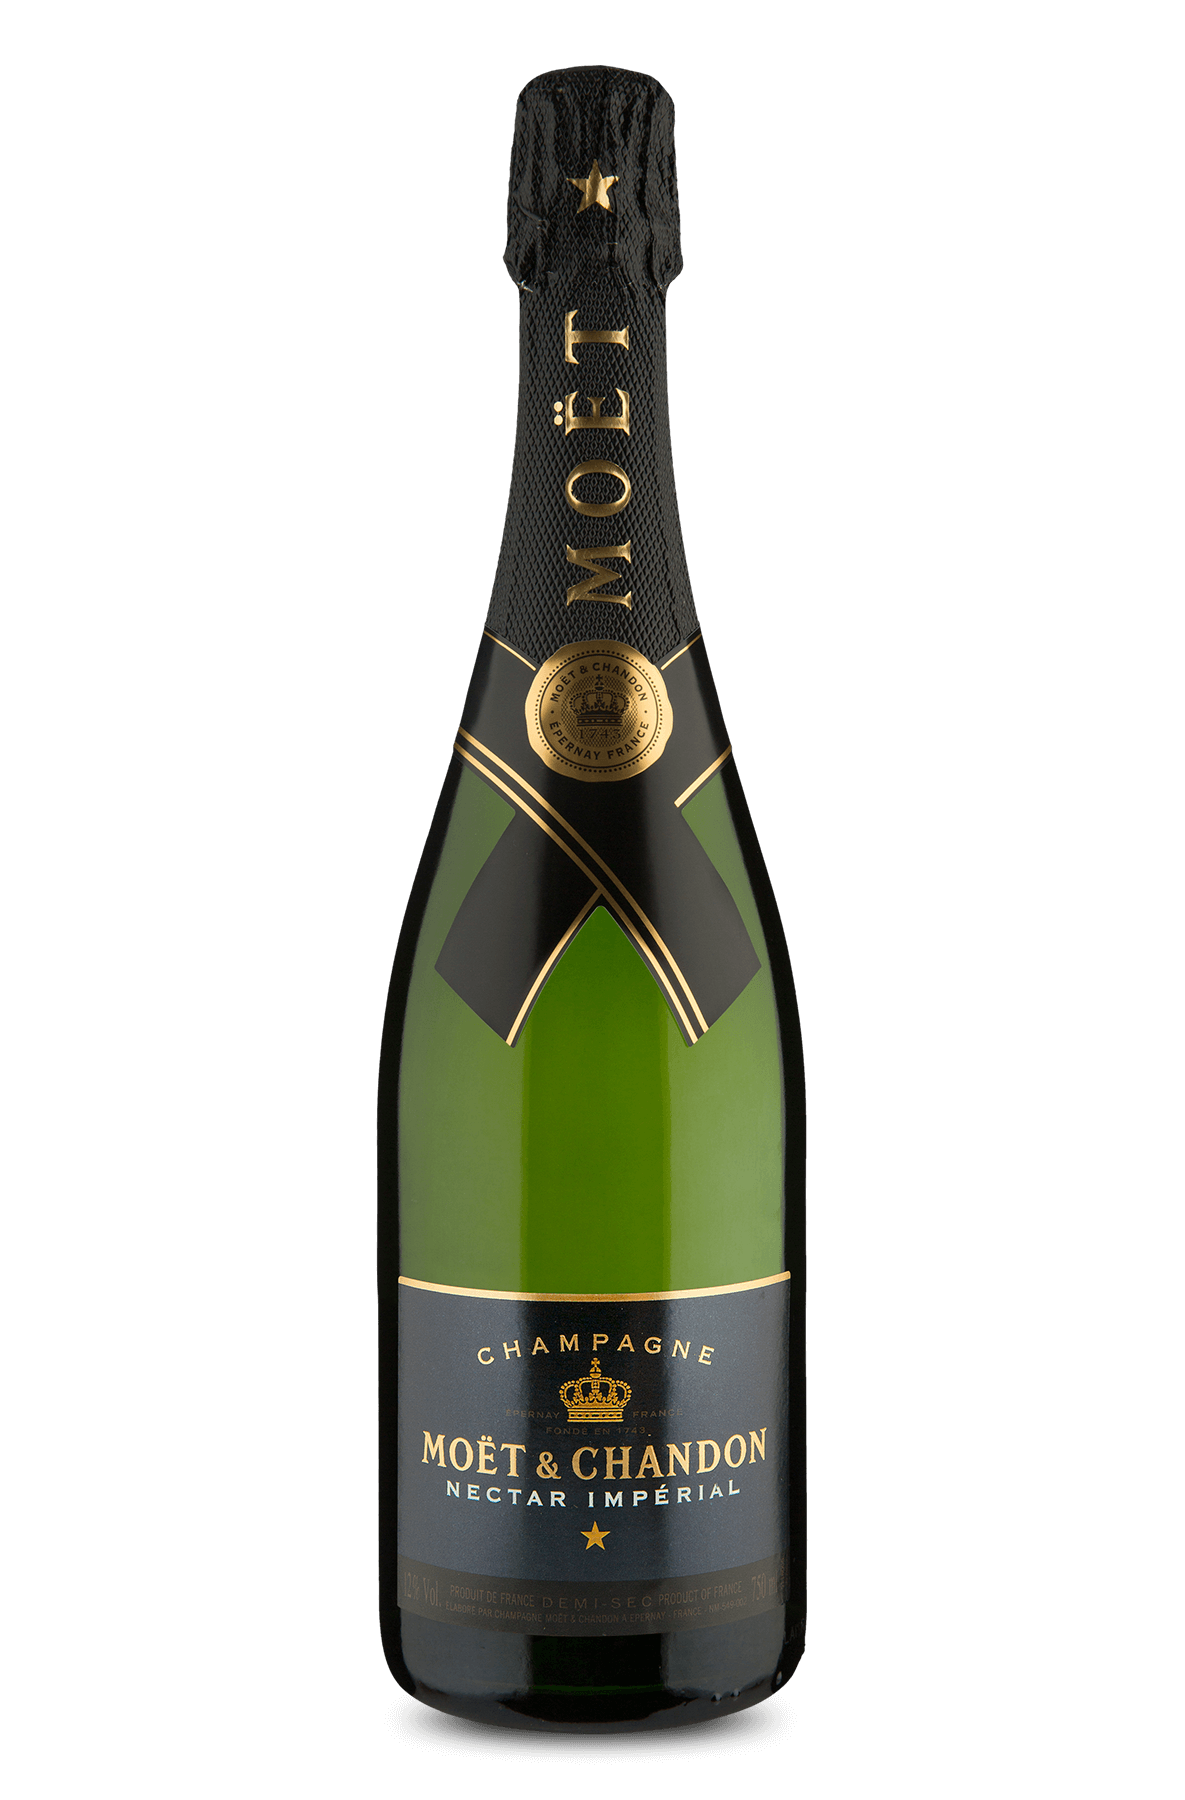 Champagne Moët & Chandon Nectar Impérial